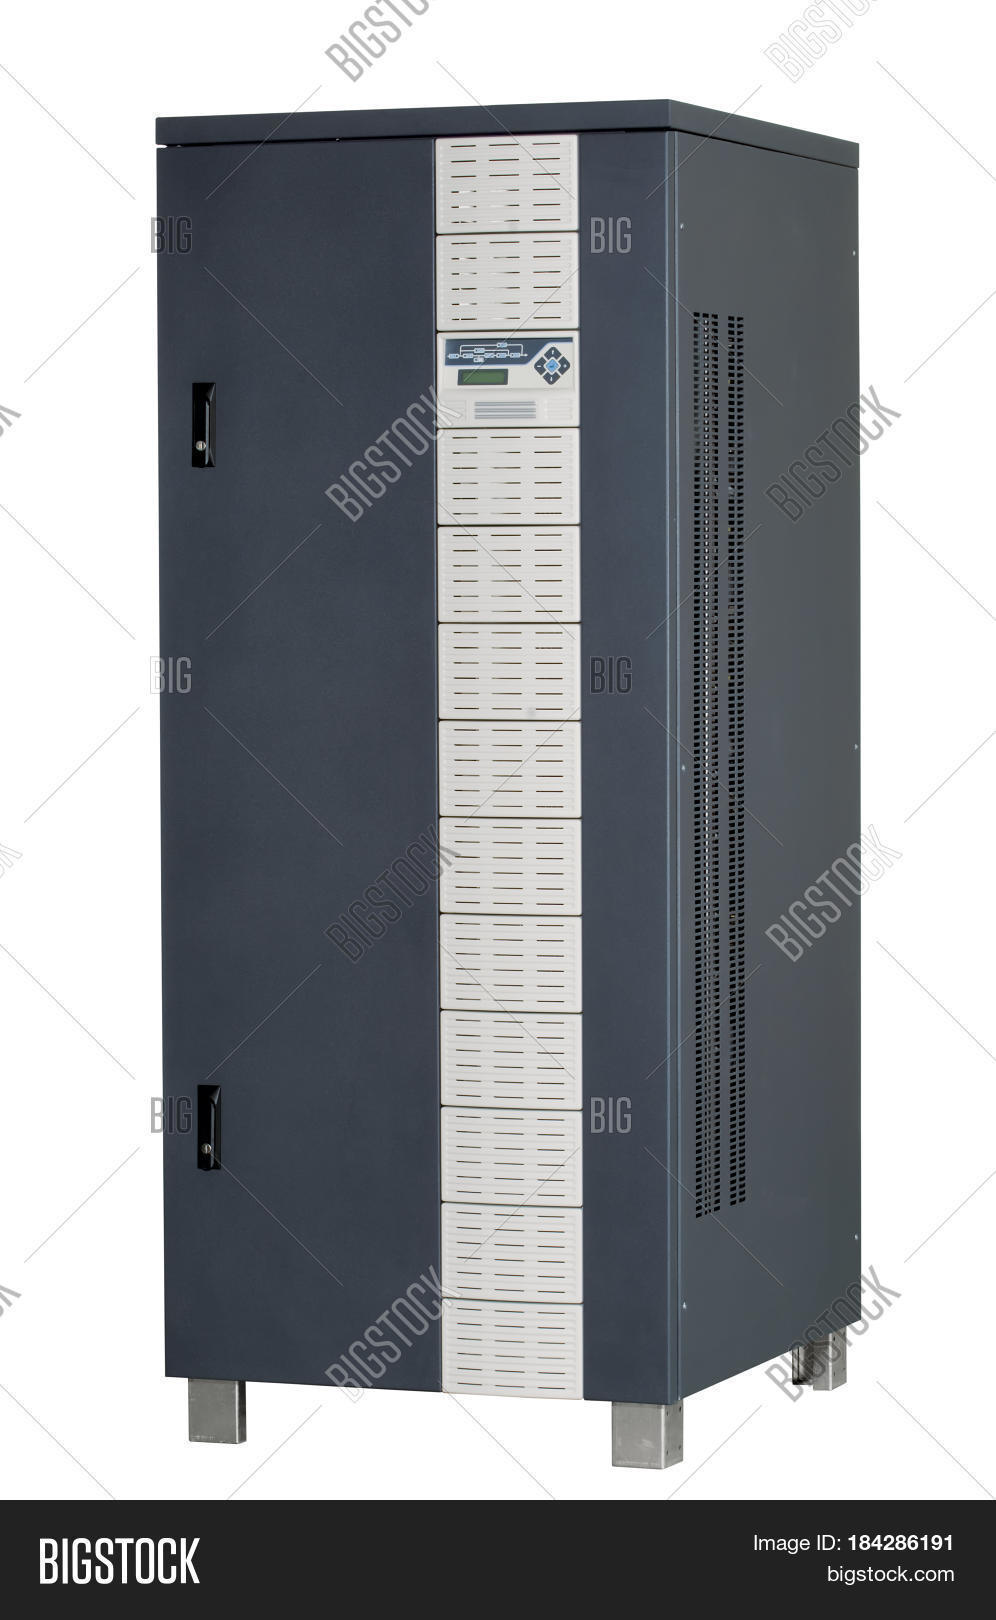 Electrical Enclosure Image Photo Free Trial Bigstock Circuit Breaker Fuse Box With Its Door Closed Could Be